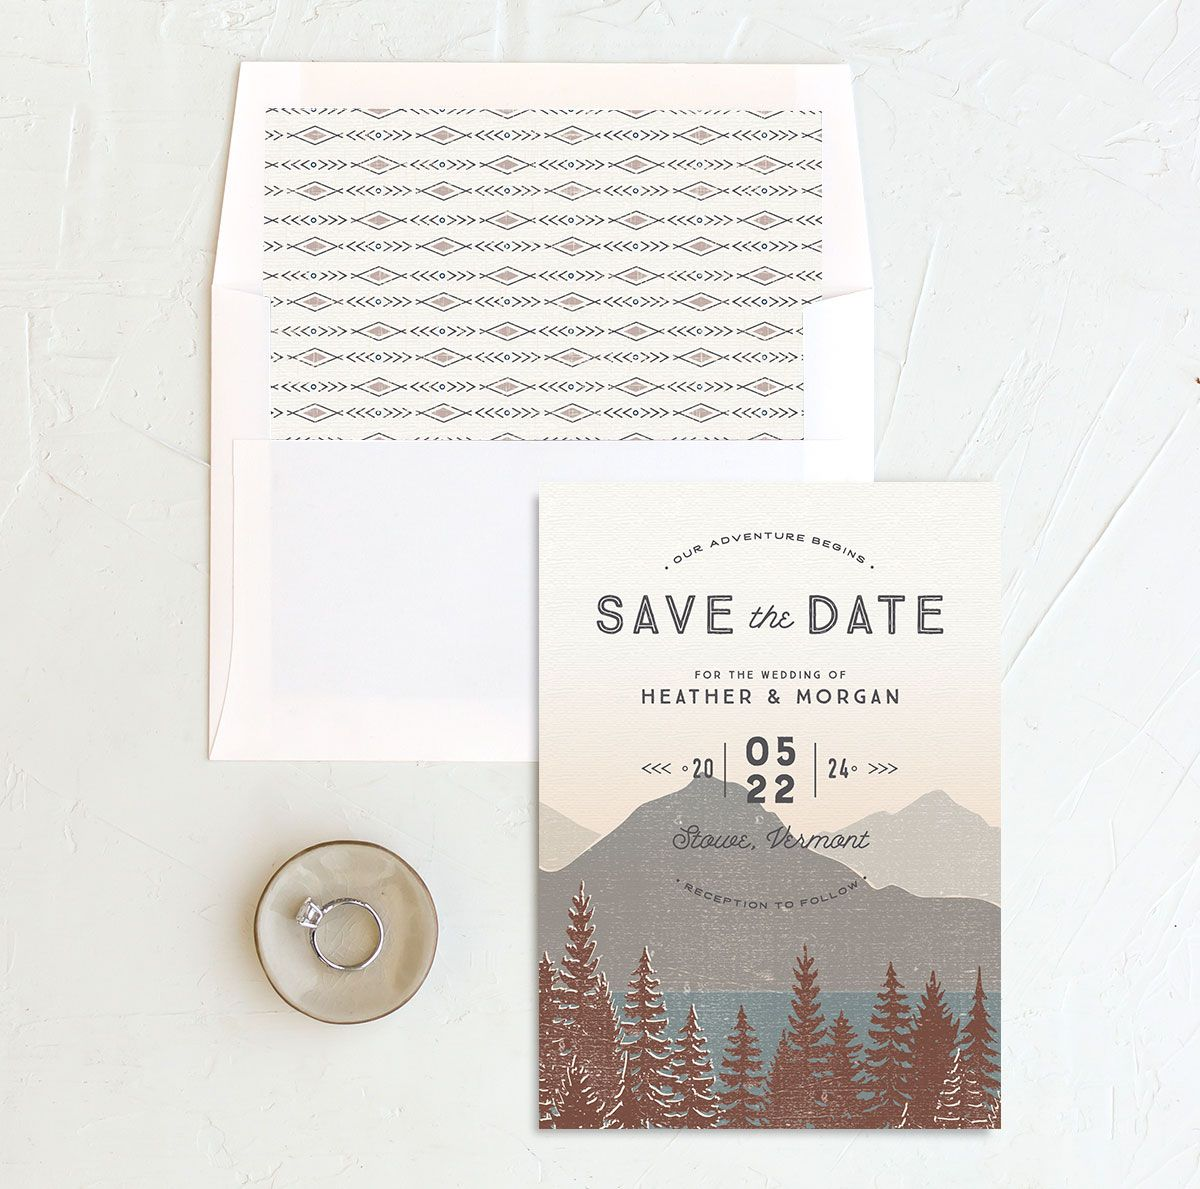 Vintage Mountainside Save the Date and envelope liner in brown